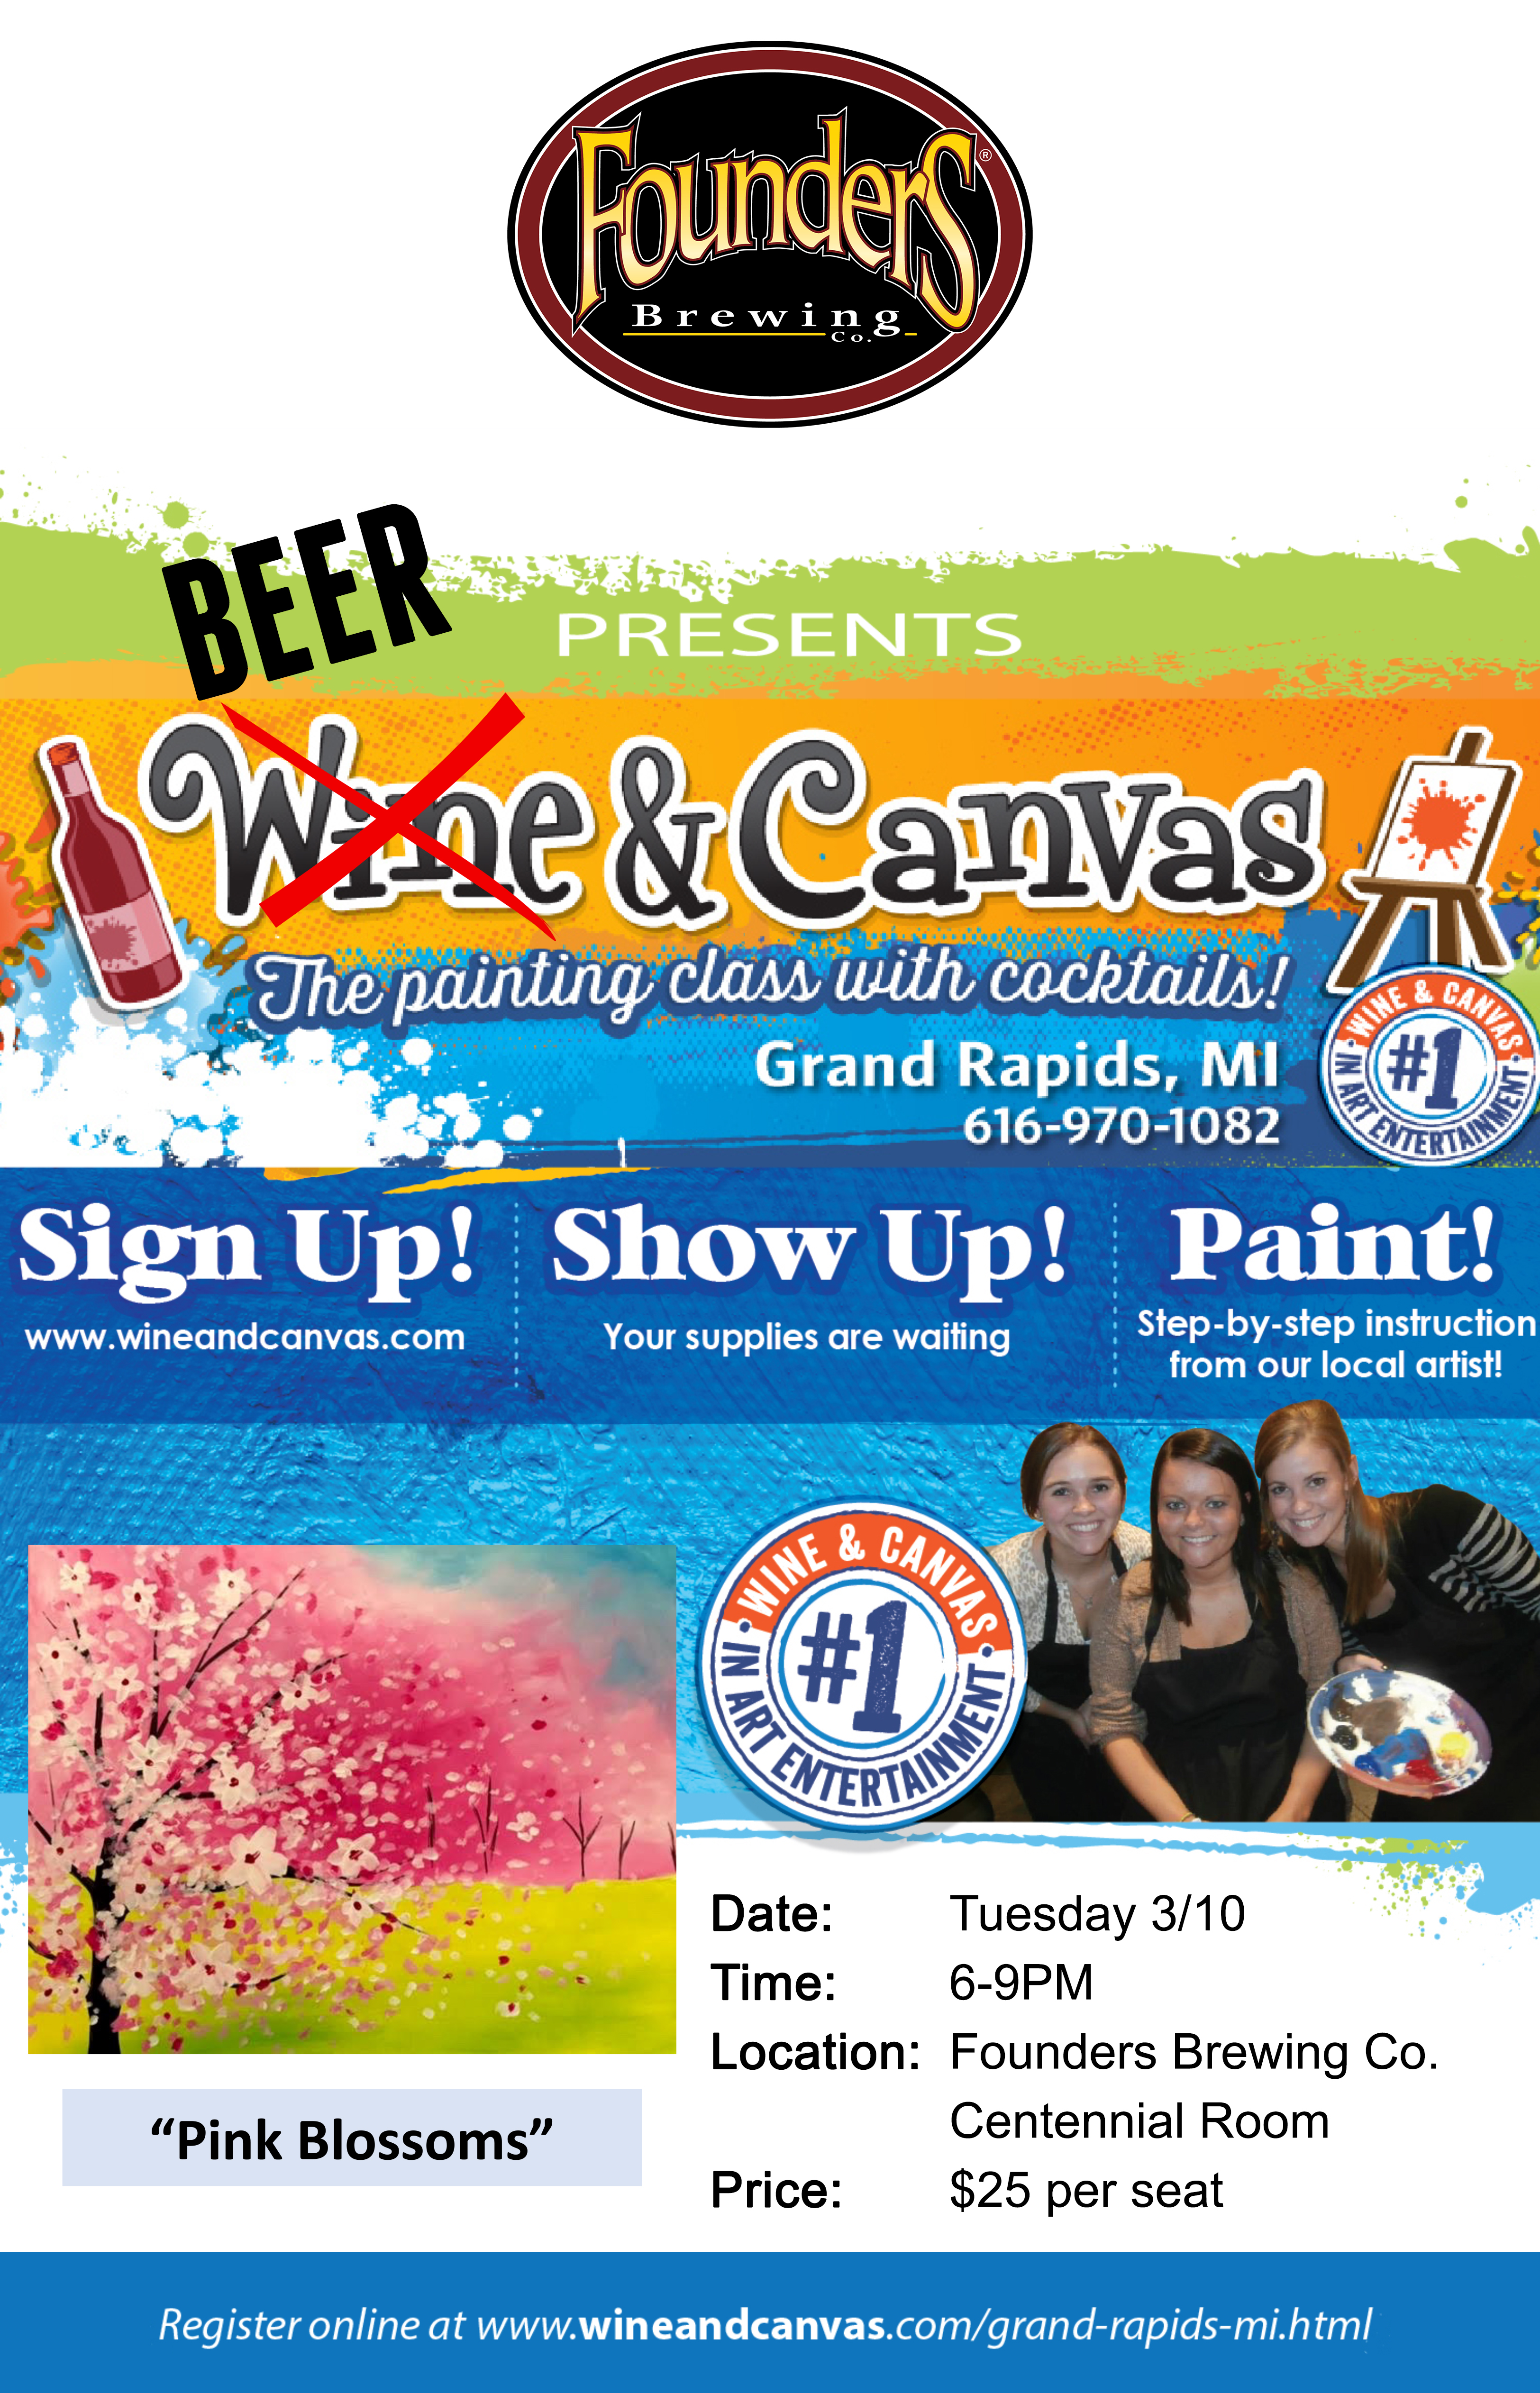 Event poster for Founders Beer & Canvas night in Grand Rapids